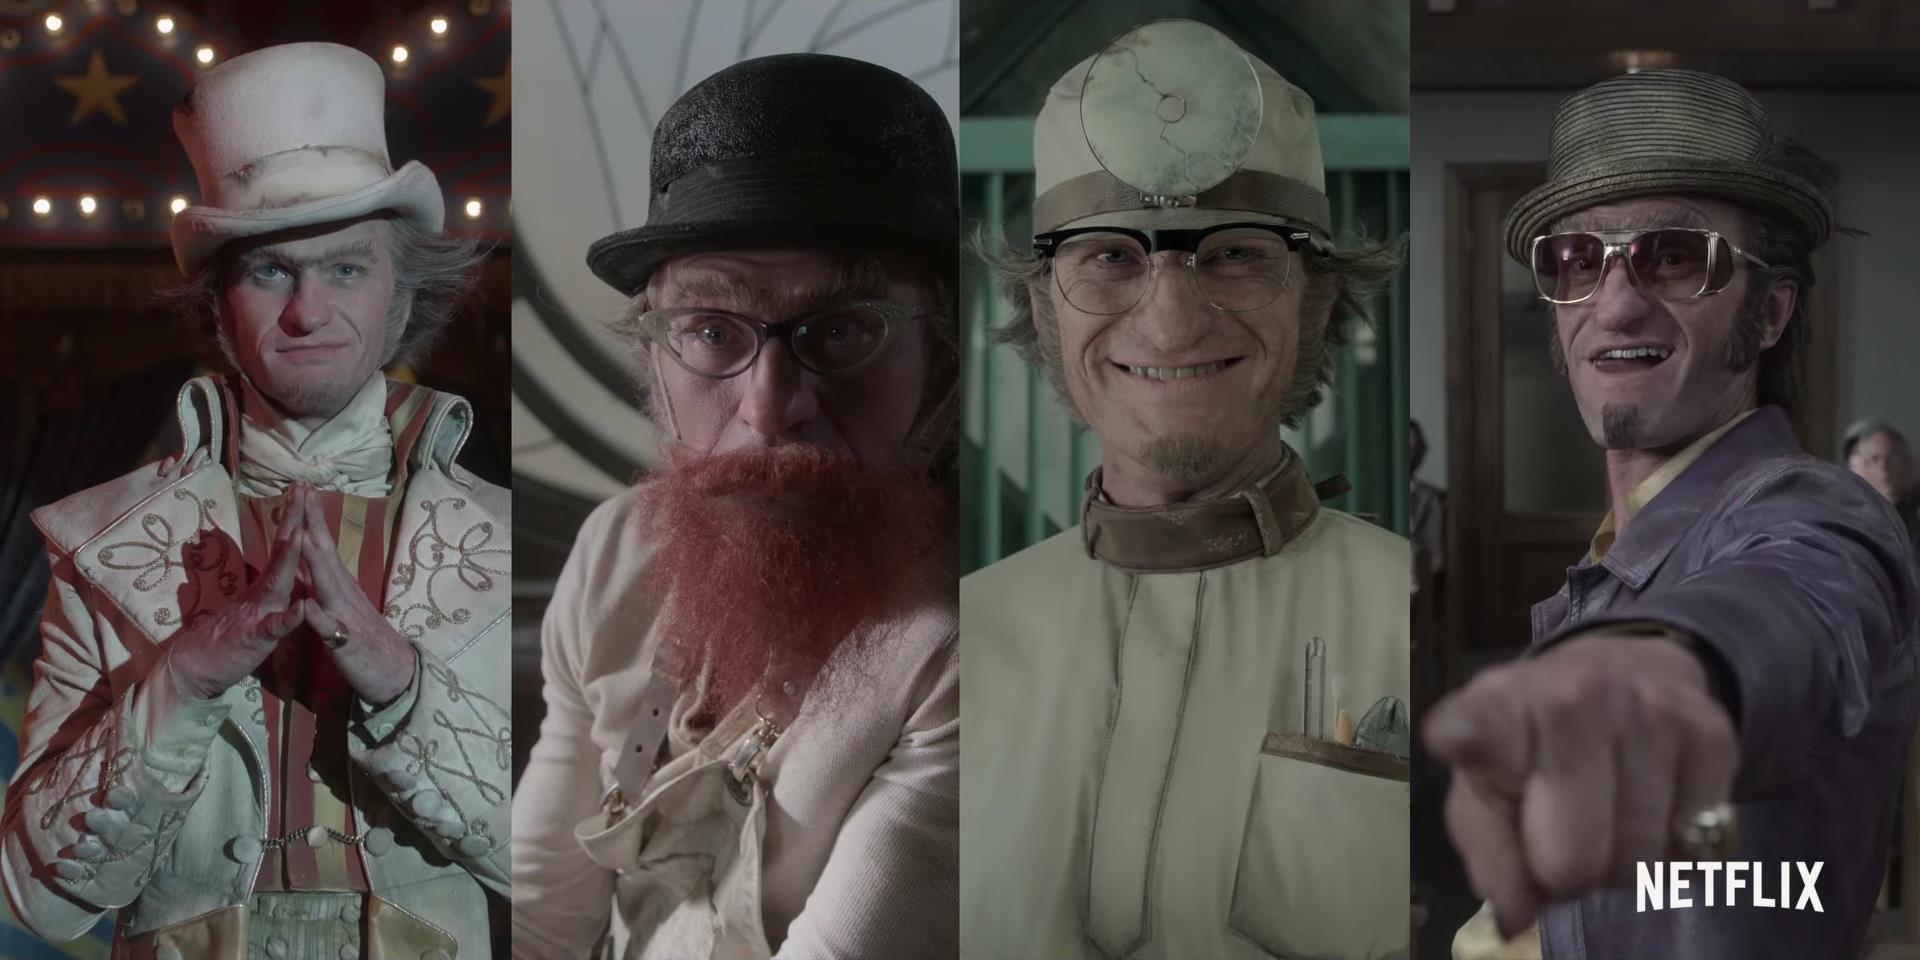 A Series of Unfortunate Events season 2 trailer